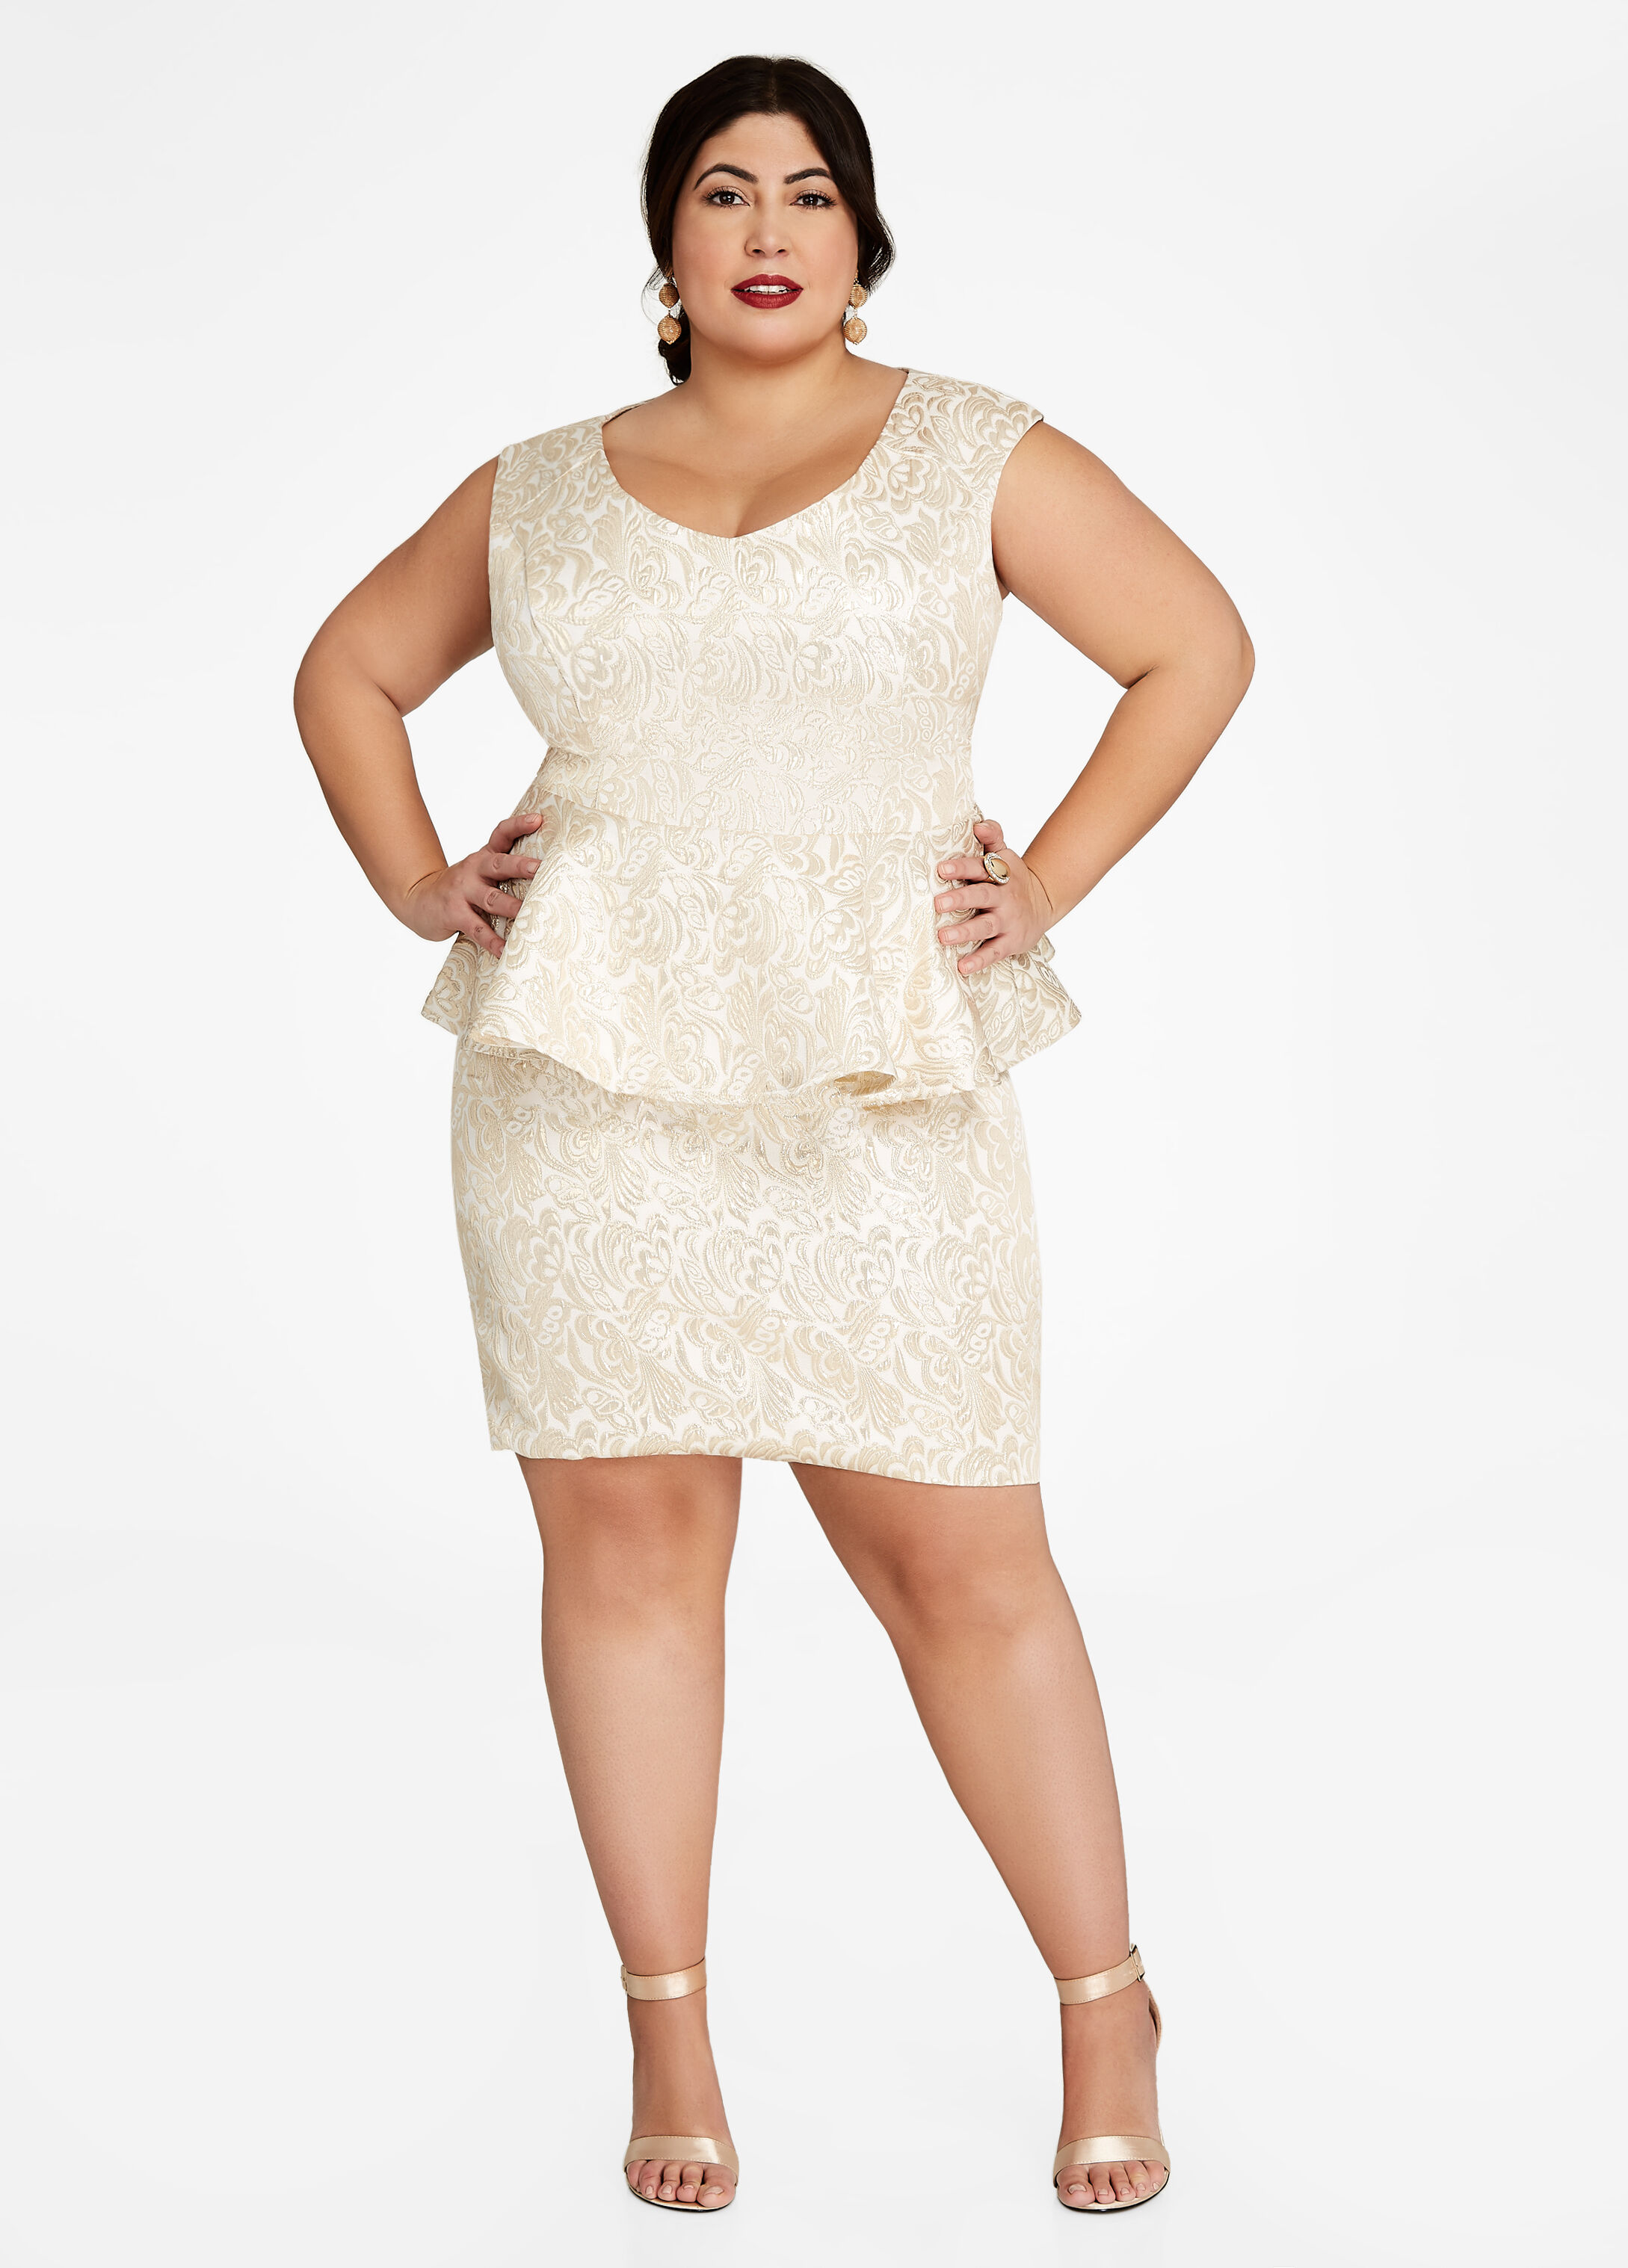 Plus Size Outfits - Gold Embroidered Peplum Top and Skirt Set